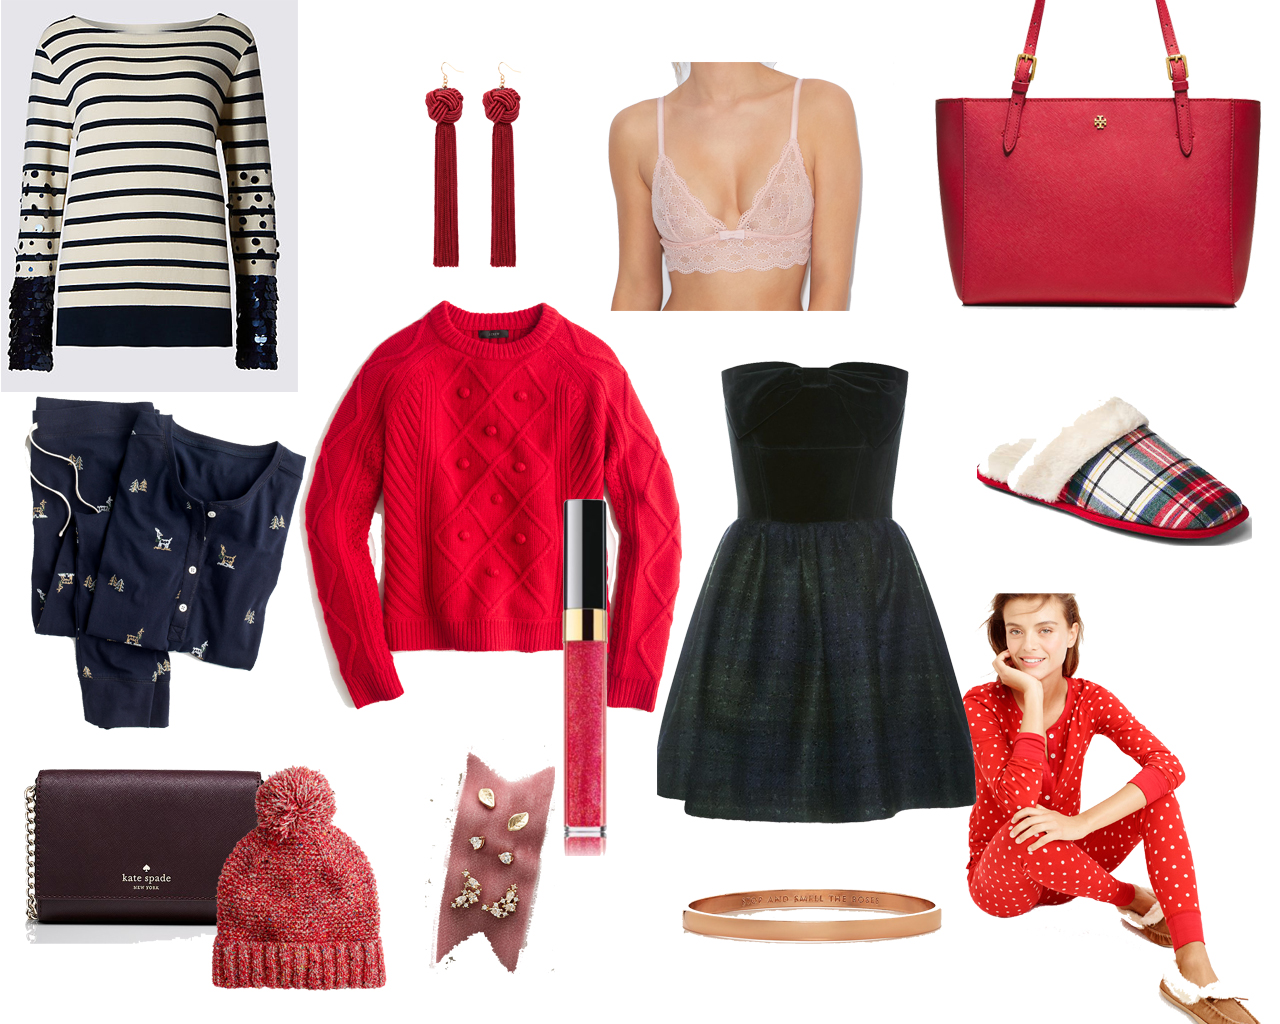 hers-gift-list